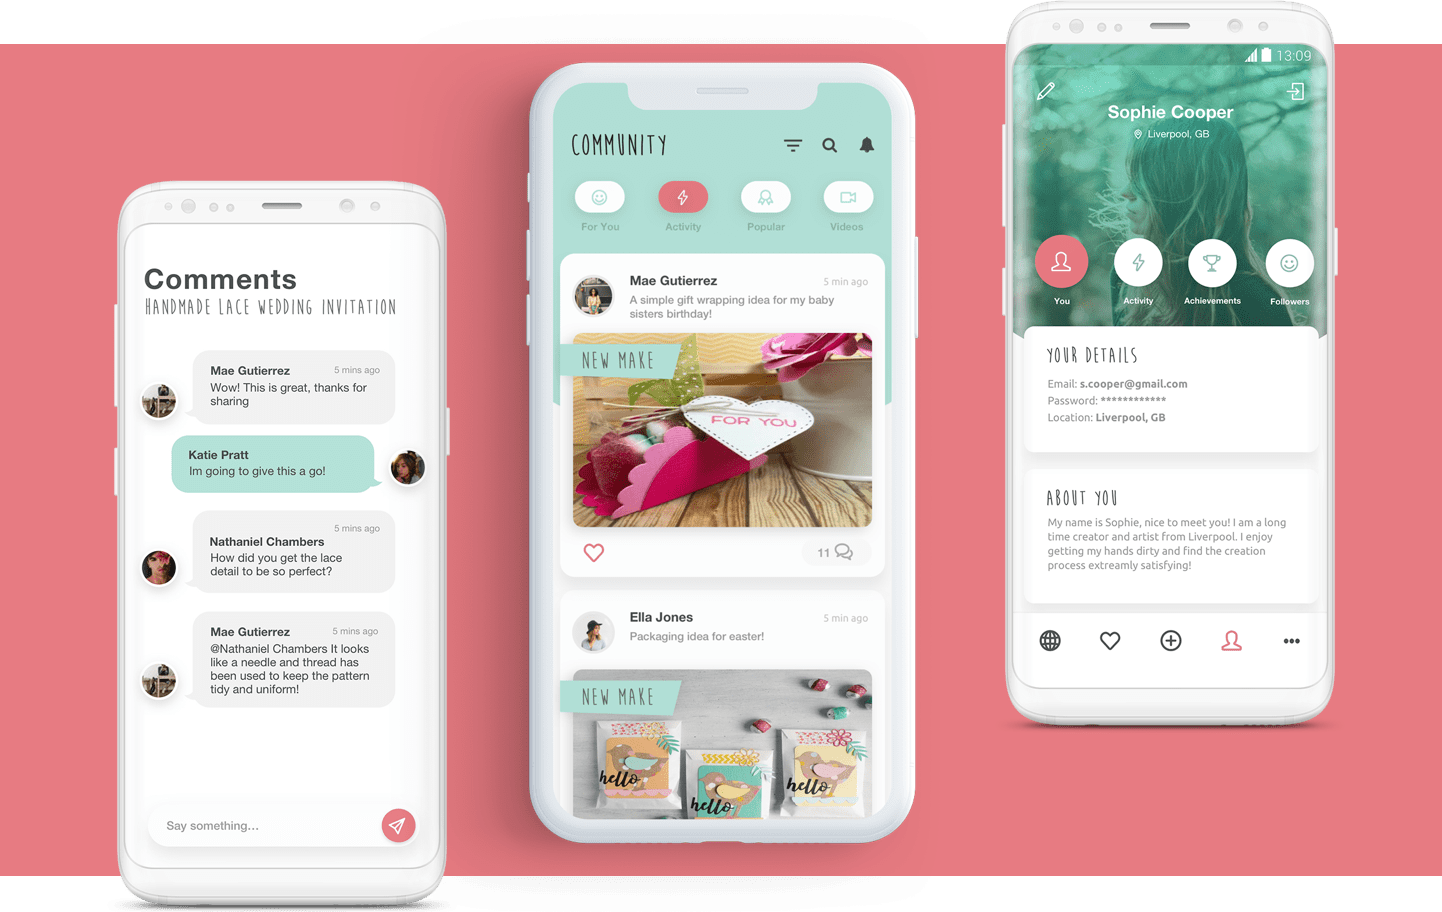 Sizzix App screens showing comments, community feed and profile